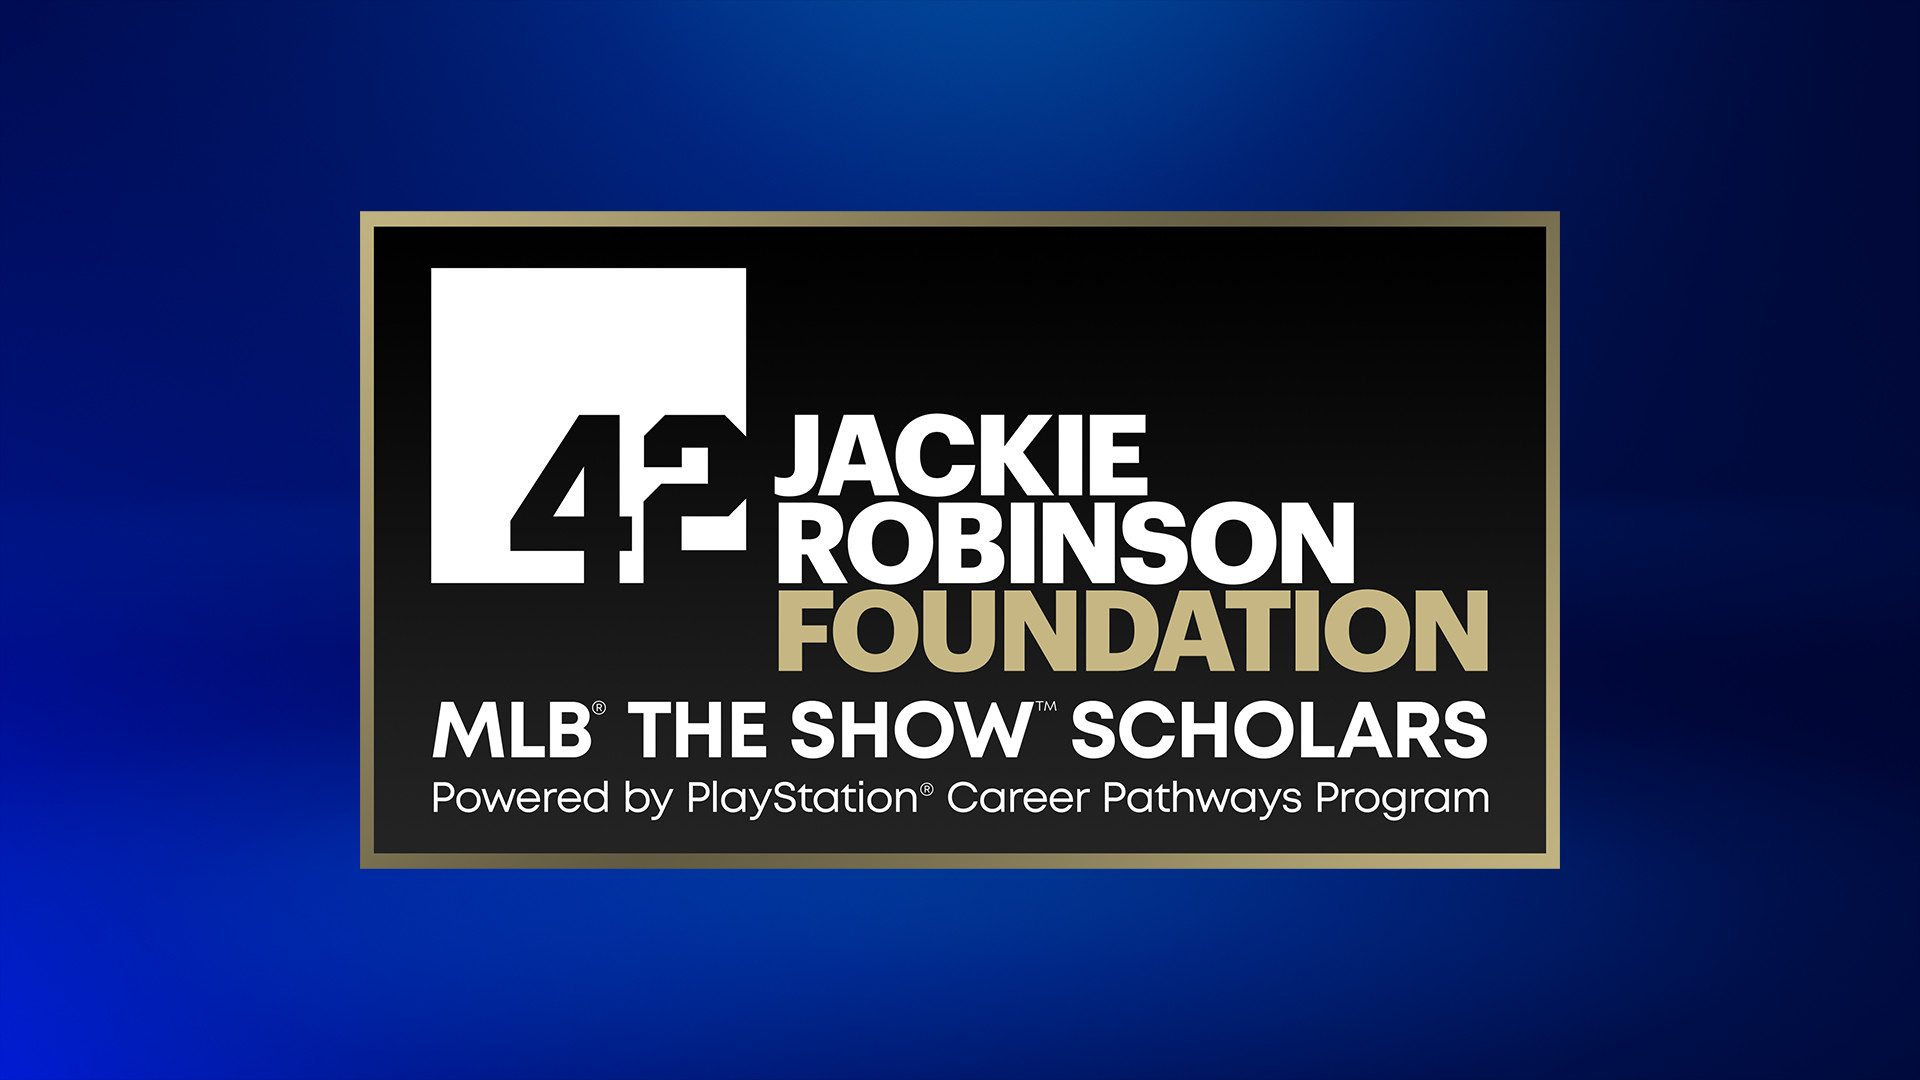 apps-open-up-for-jackie-robinson-basis-/-playstation-mlb-the-demonstrate-scholarships